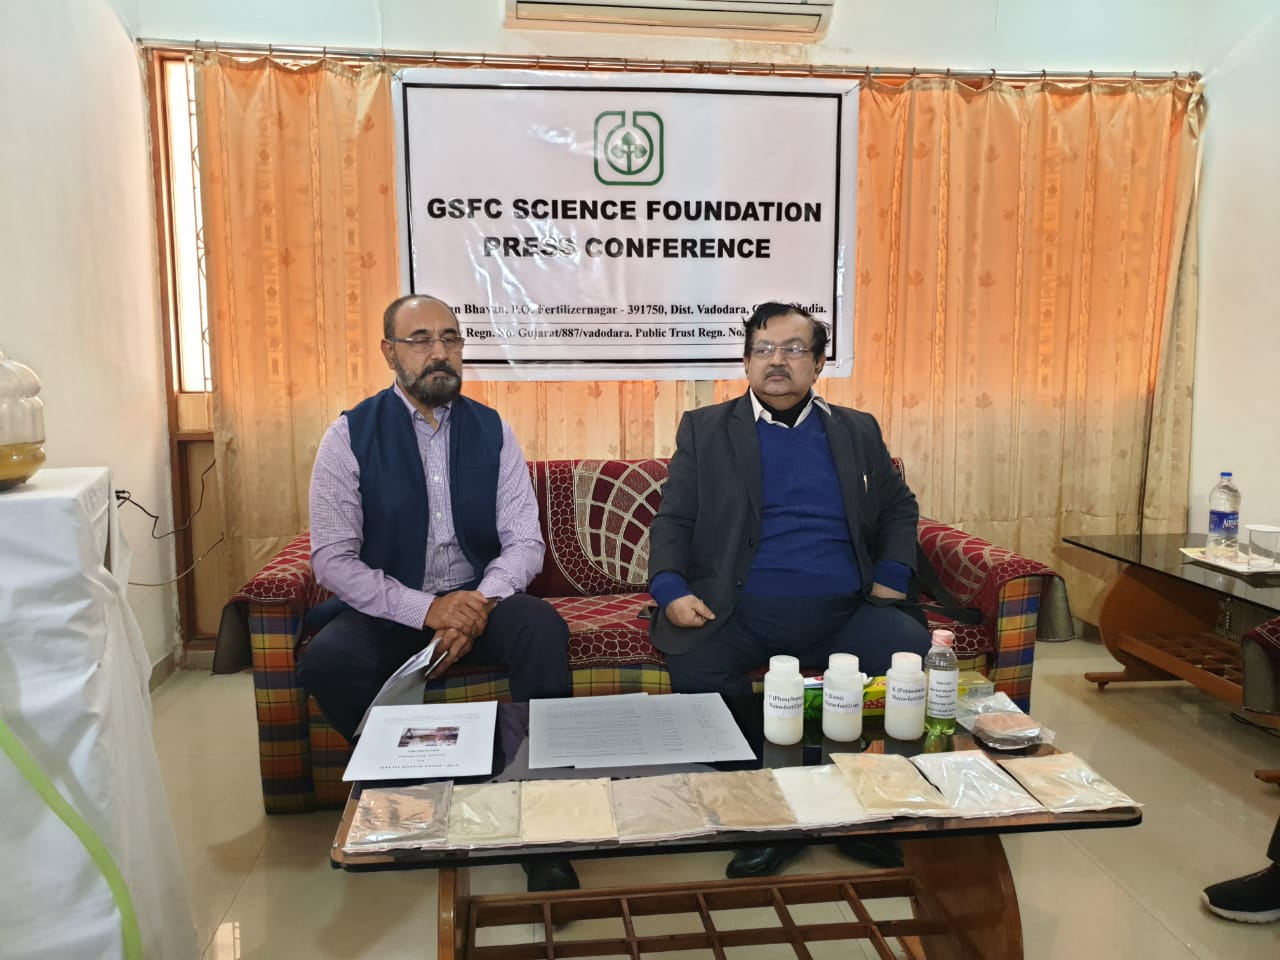 GSFC Science Foundation research projects in the field of water and agriculture